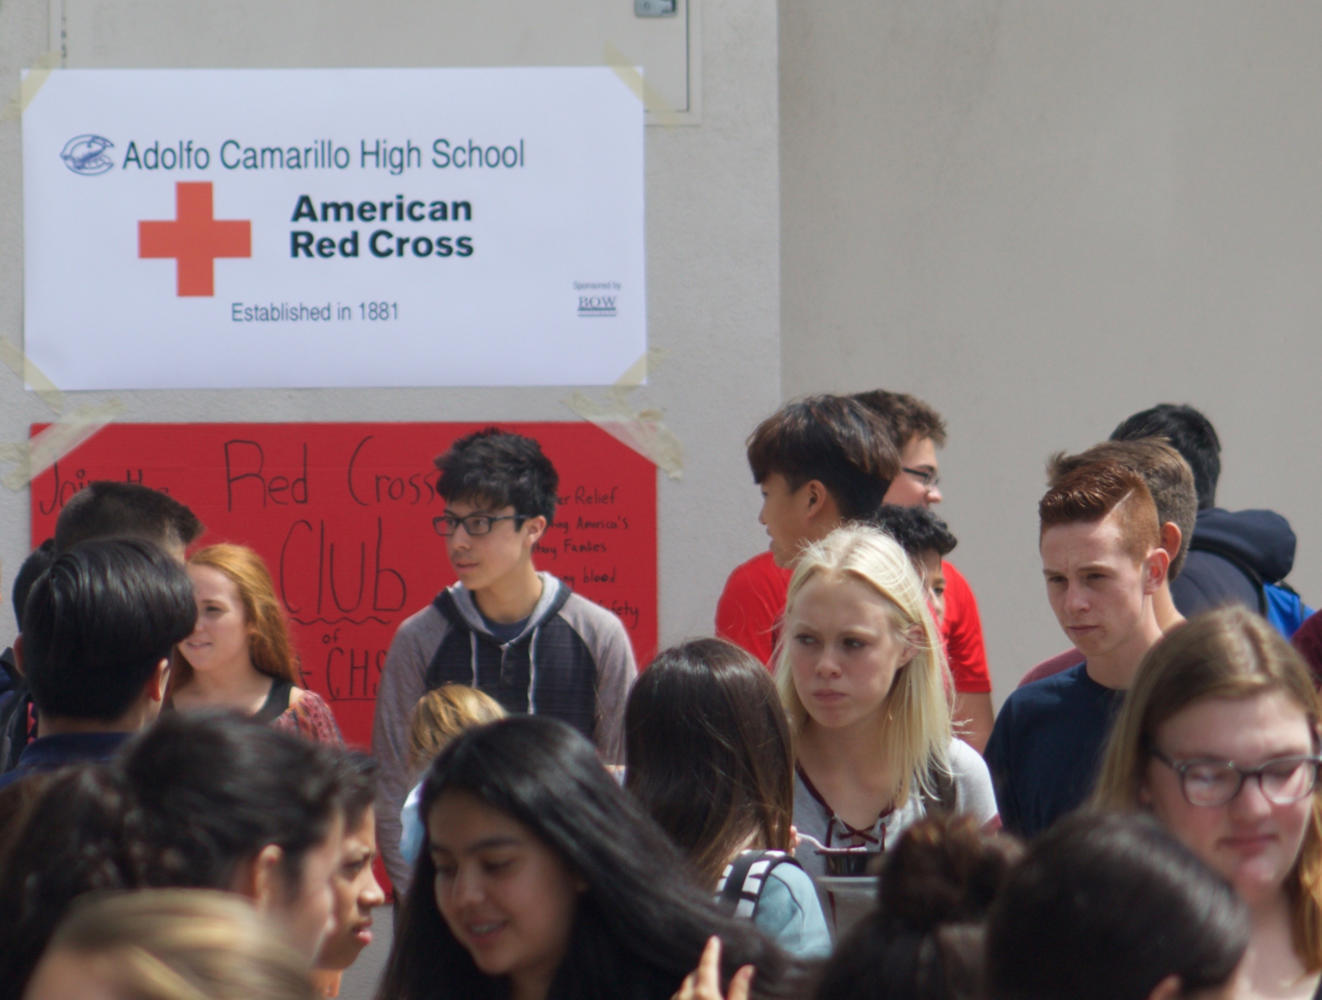 American Red Cross Club invites new faces to help provide relief to those in need.